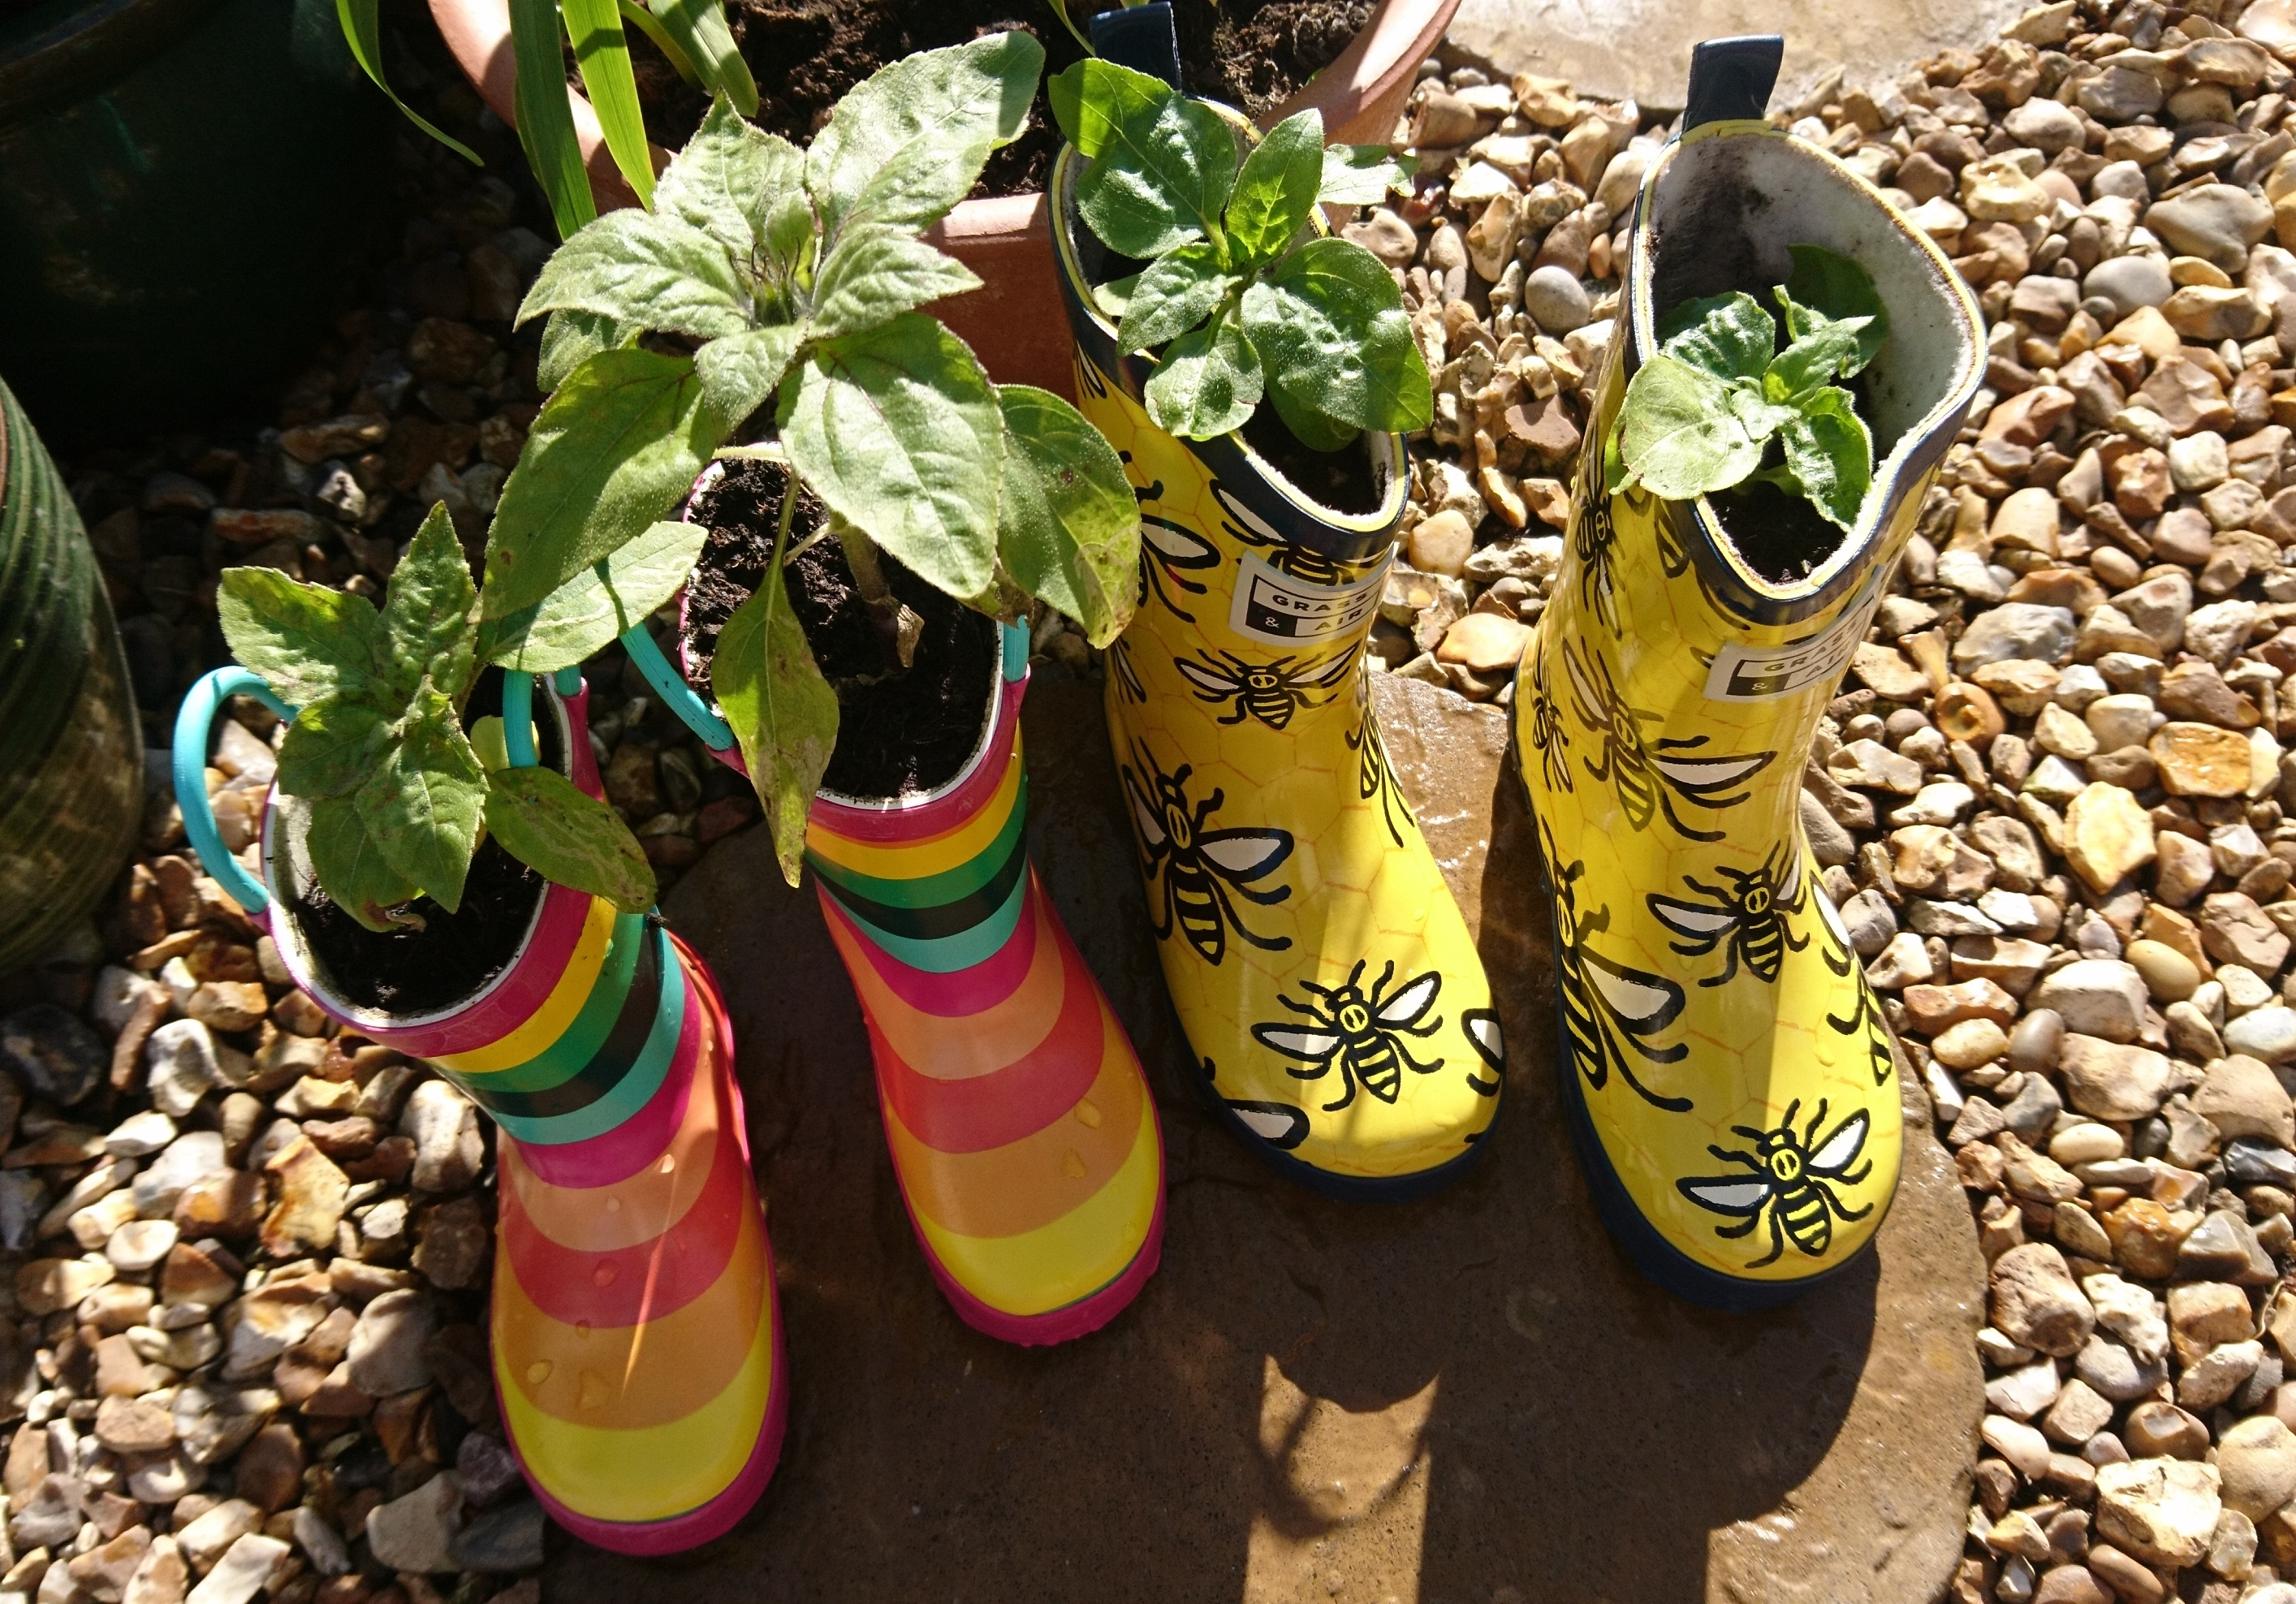 Sunflowers growing in wellington boots.